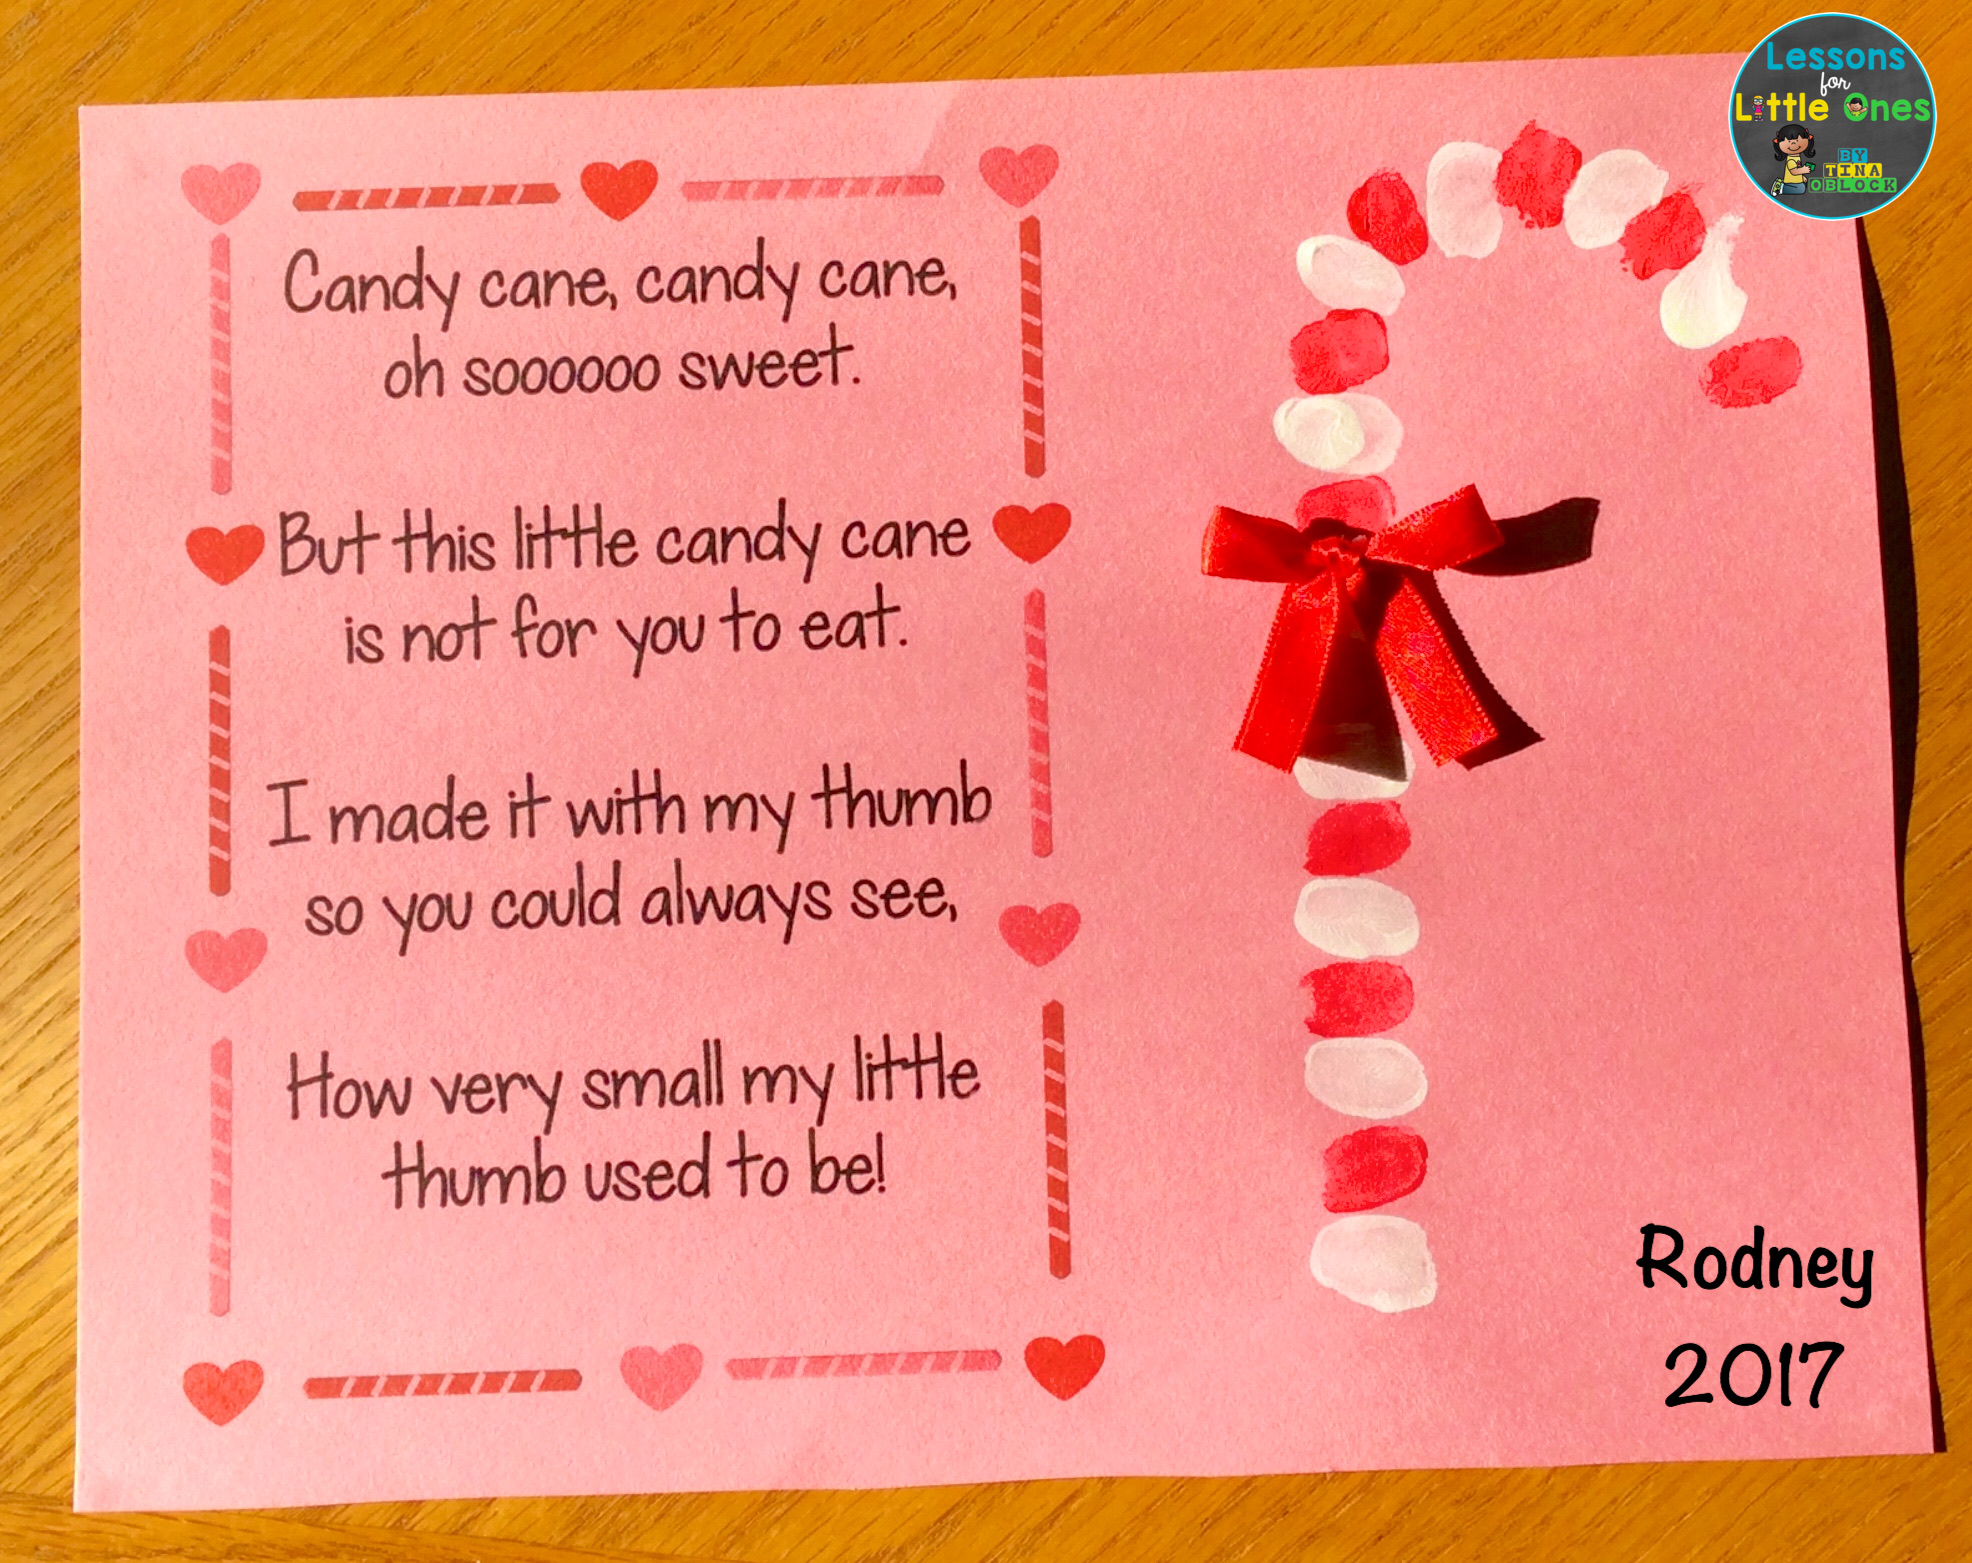 Lessons for little ones by tina oblock building a love of candy cane poem and thumbprint christmas card for parents kristyandbryce Image collections